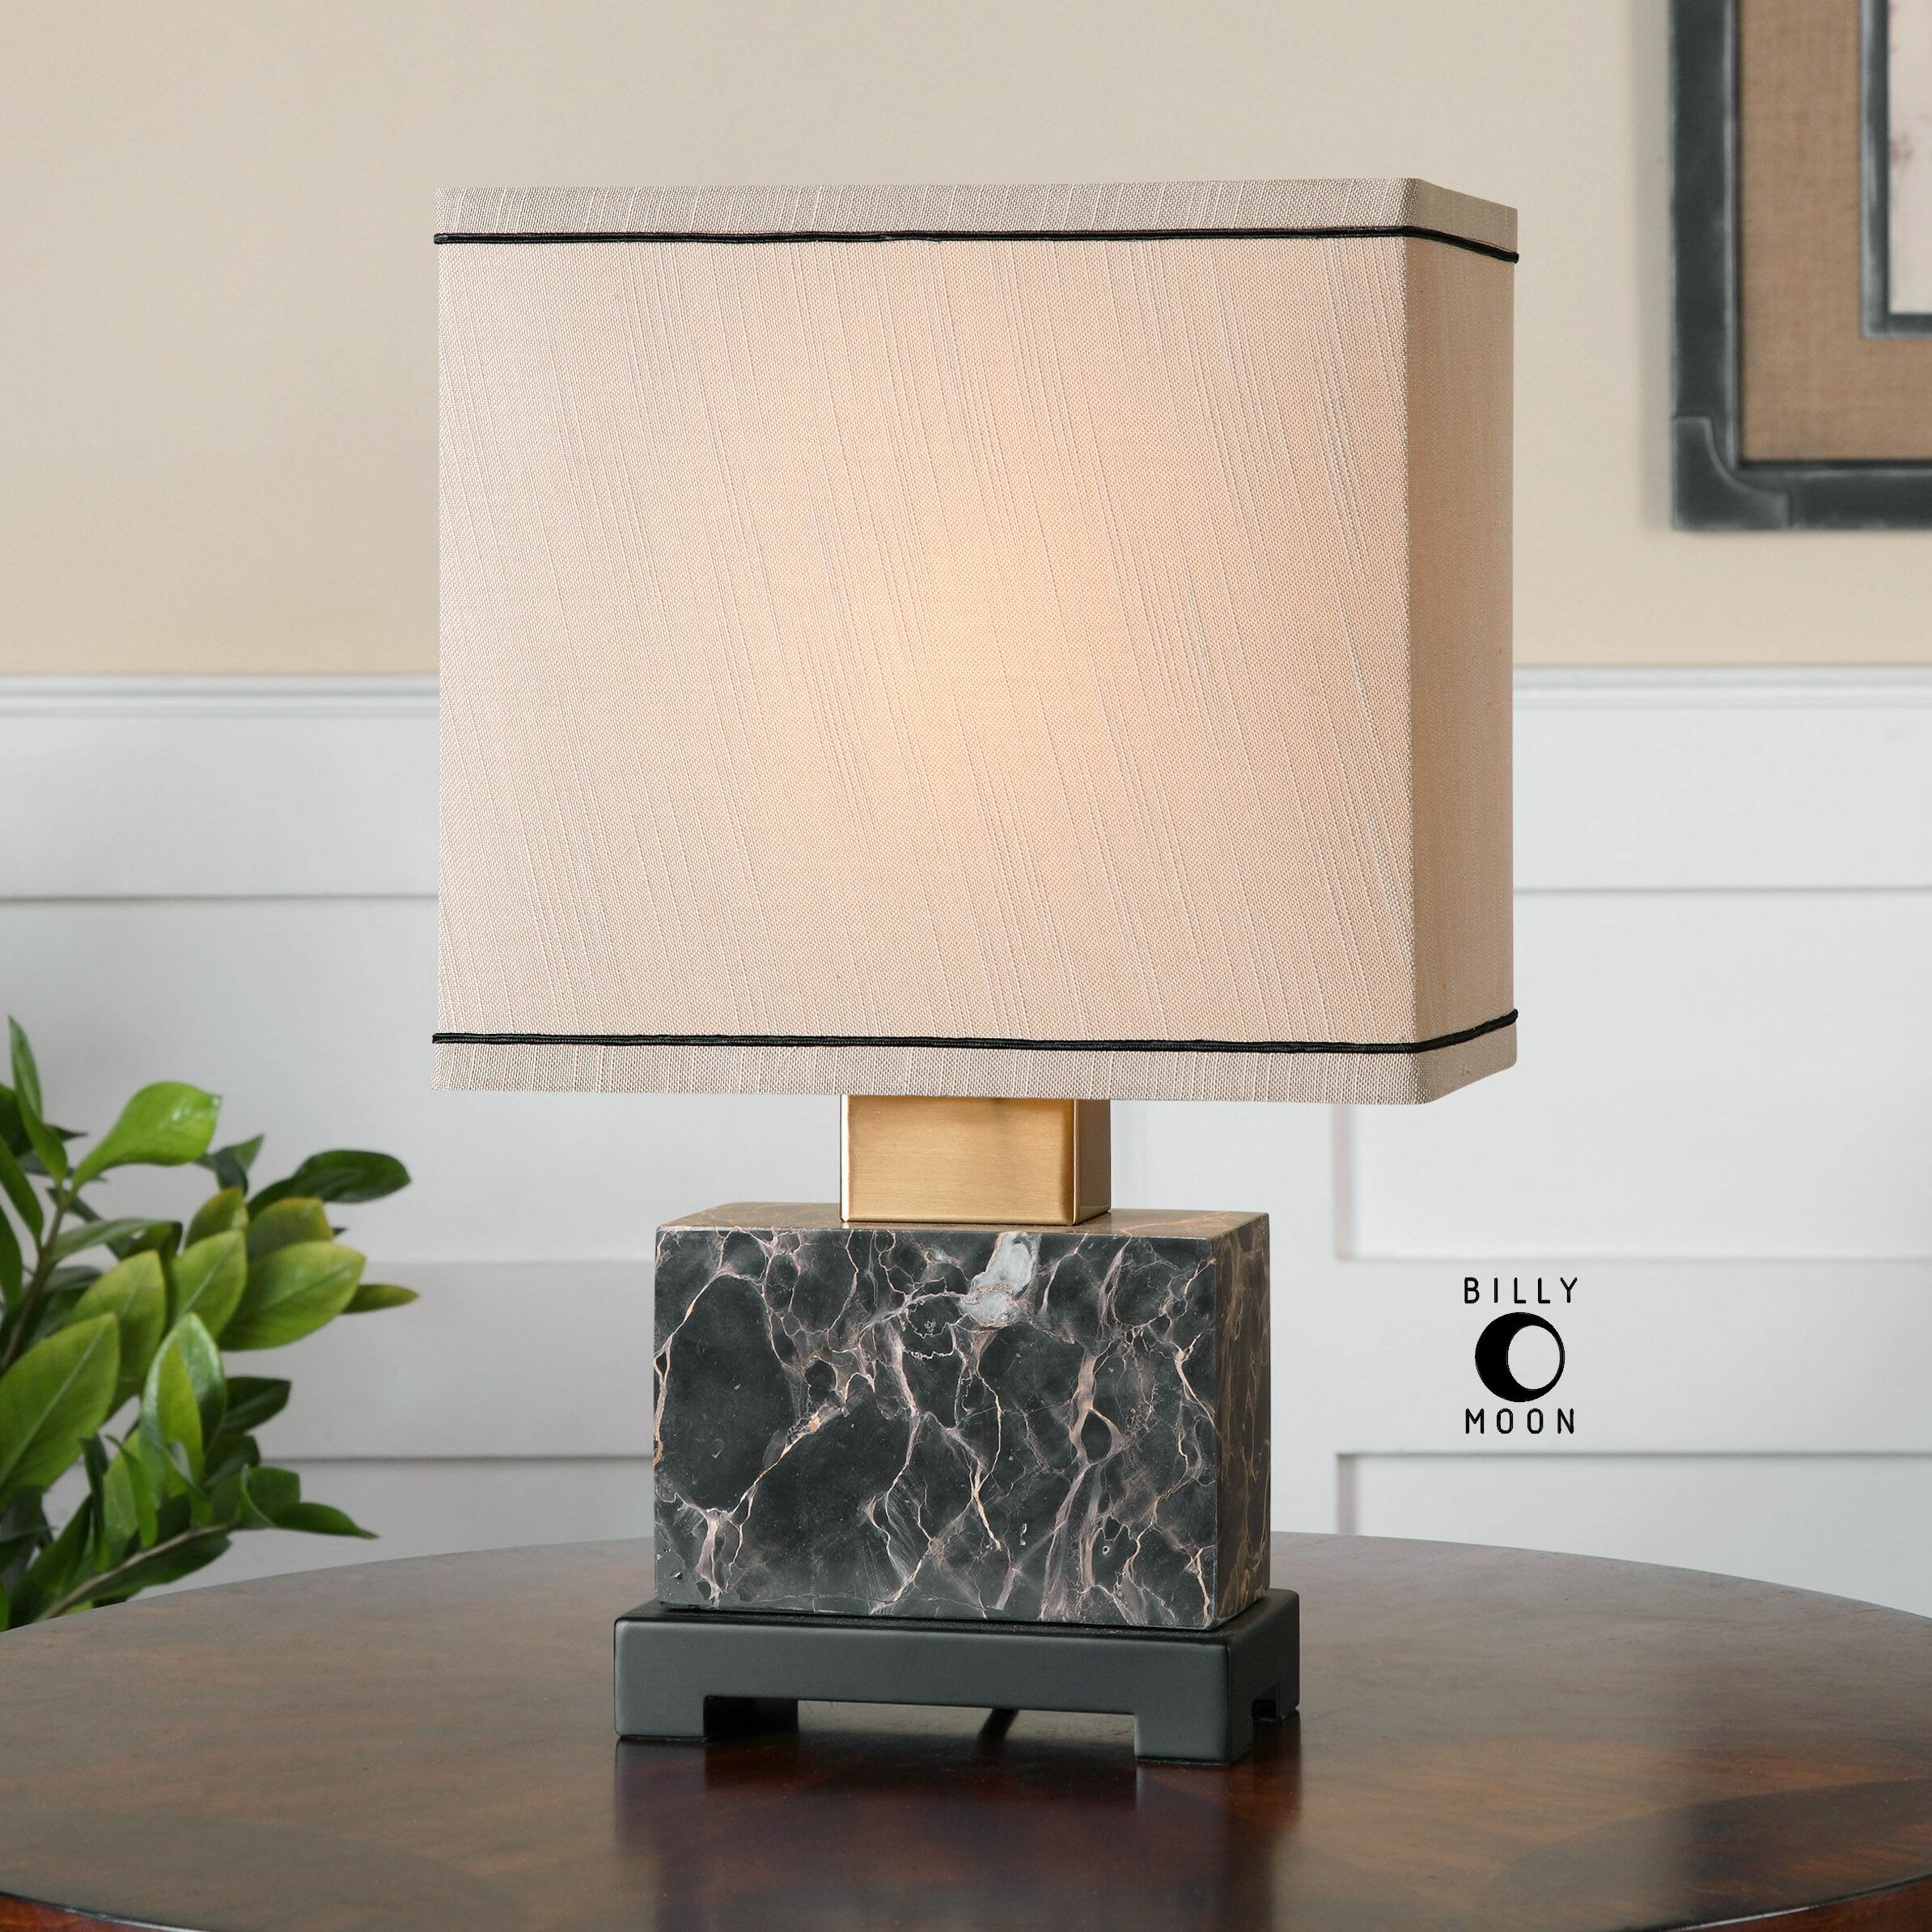 entry way table uttermost anadell 15 75 quot table lamp amp reviews wayfair 29975